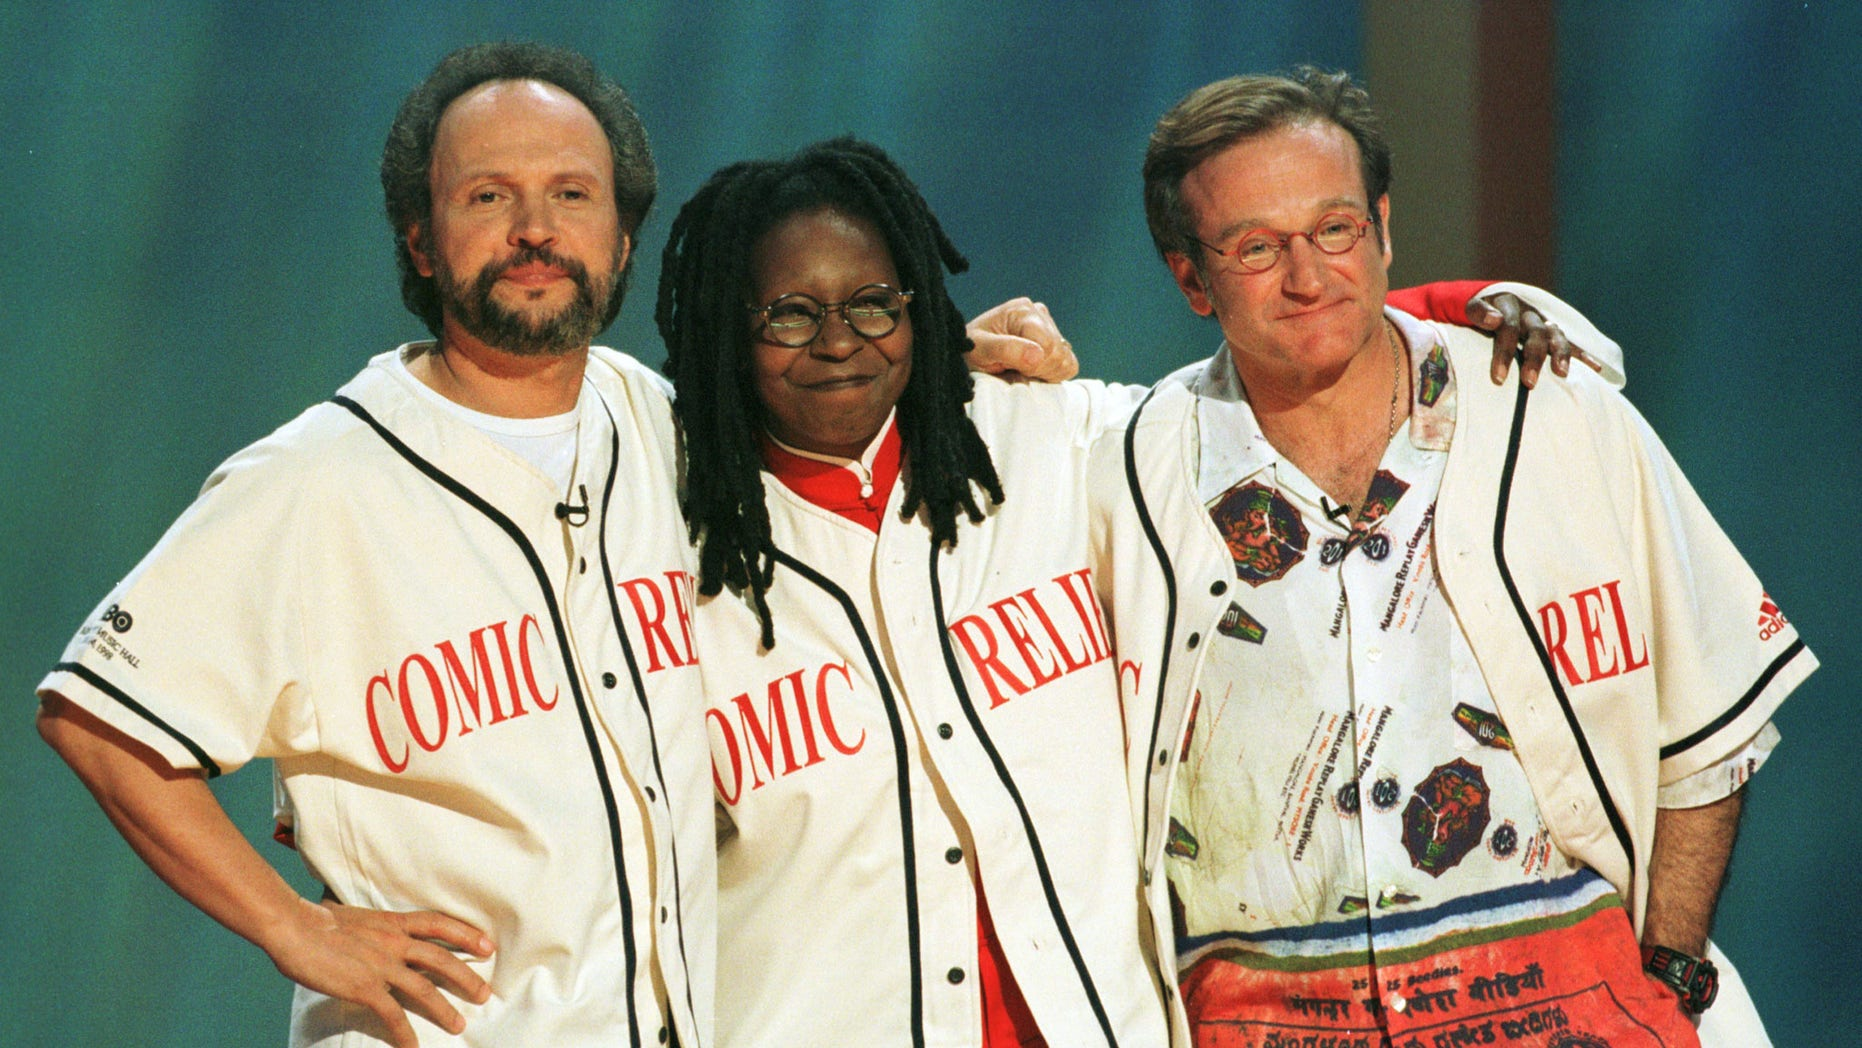 Comedians Robin Williams (R), Billy Crystal (L) and Whoopi Goldberg share a hug on the stage at the end of Comic Relief 8.